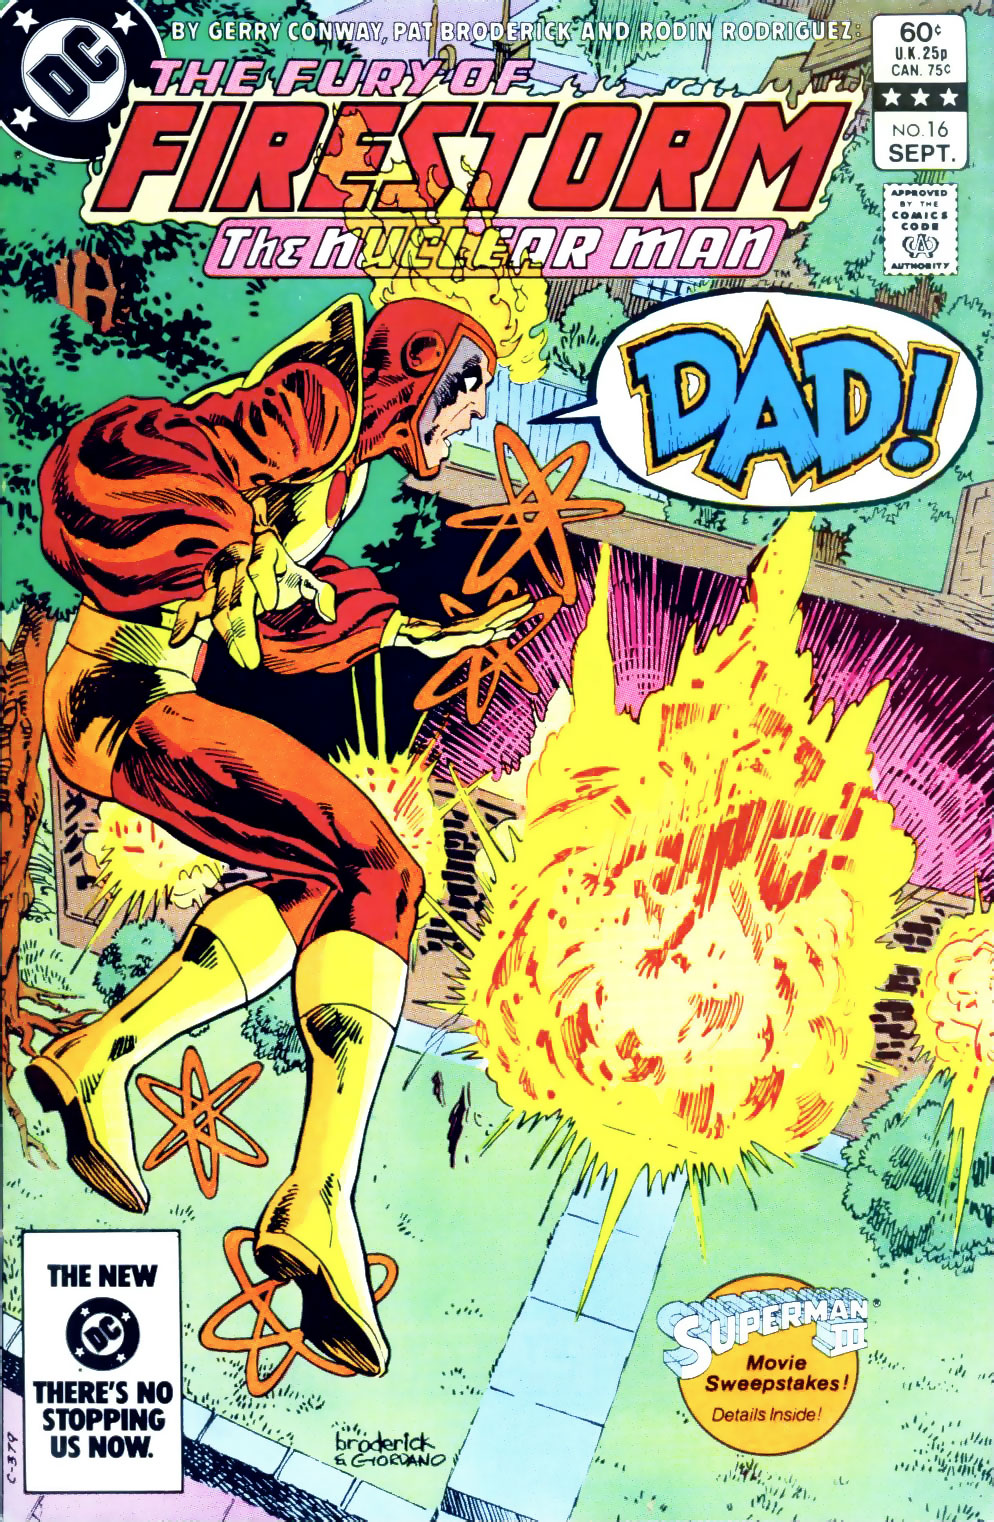 Fury of Firestorm #16 cover by Pat Broderick & Dick Giordano